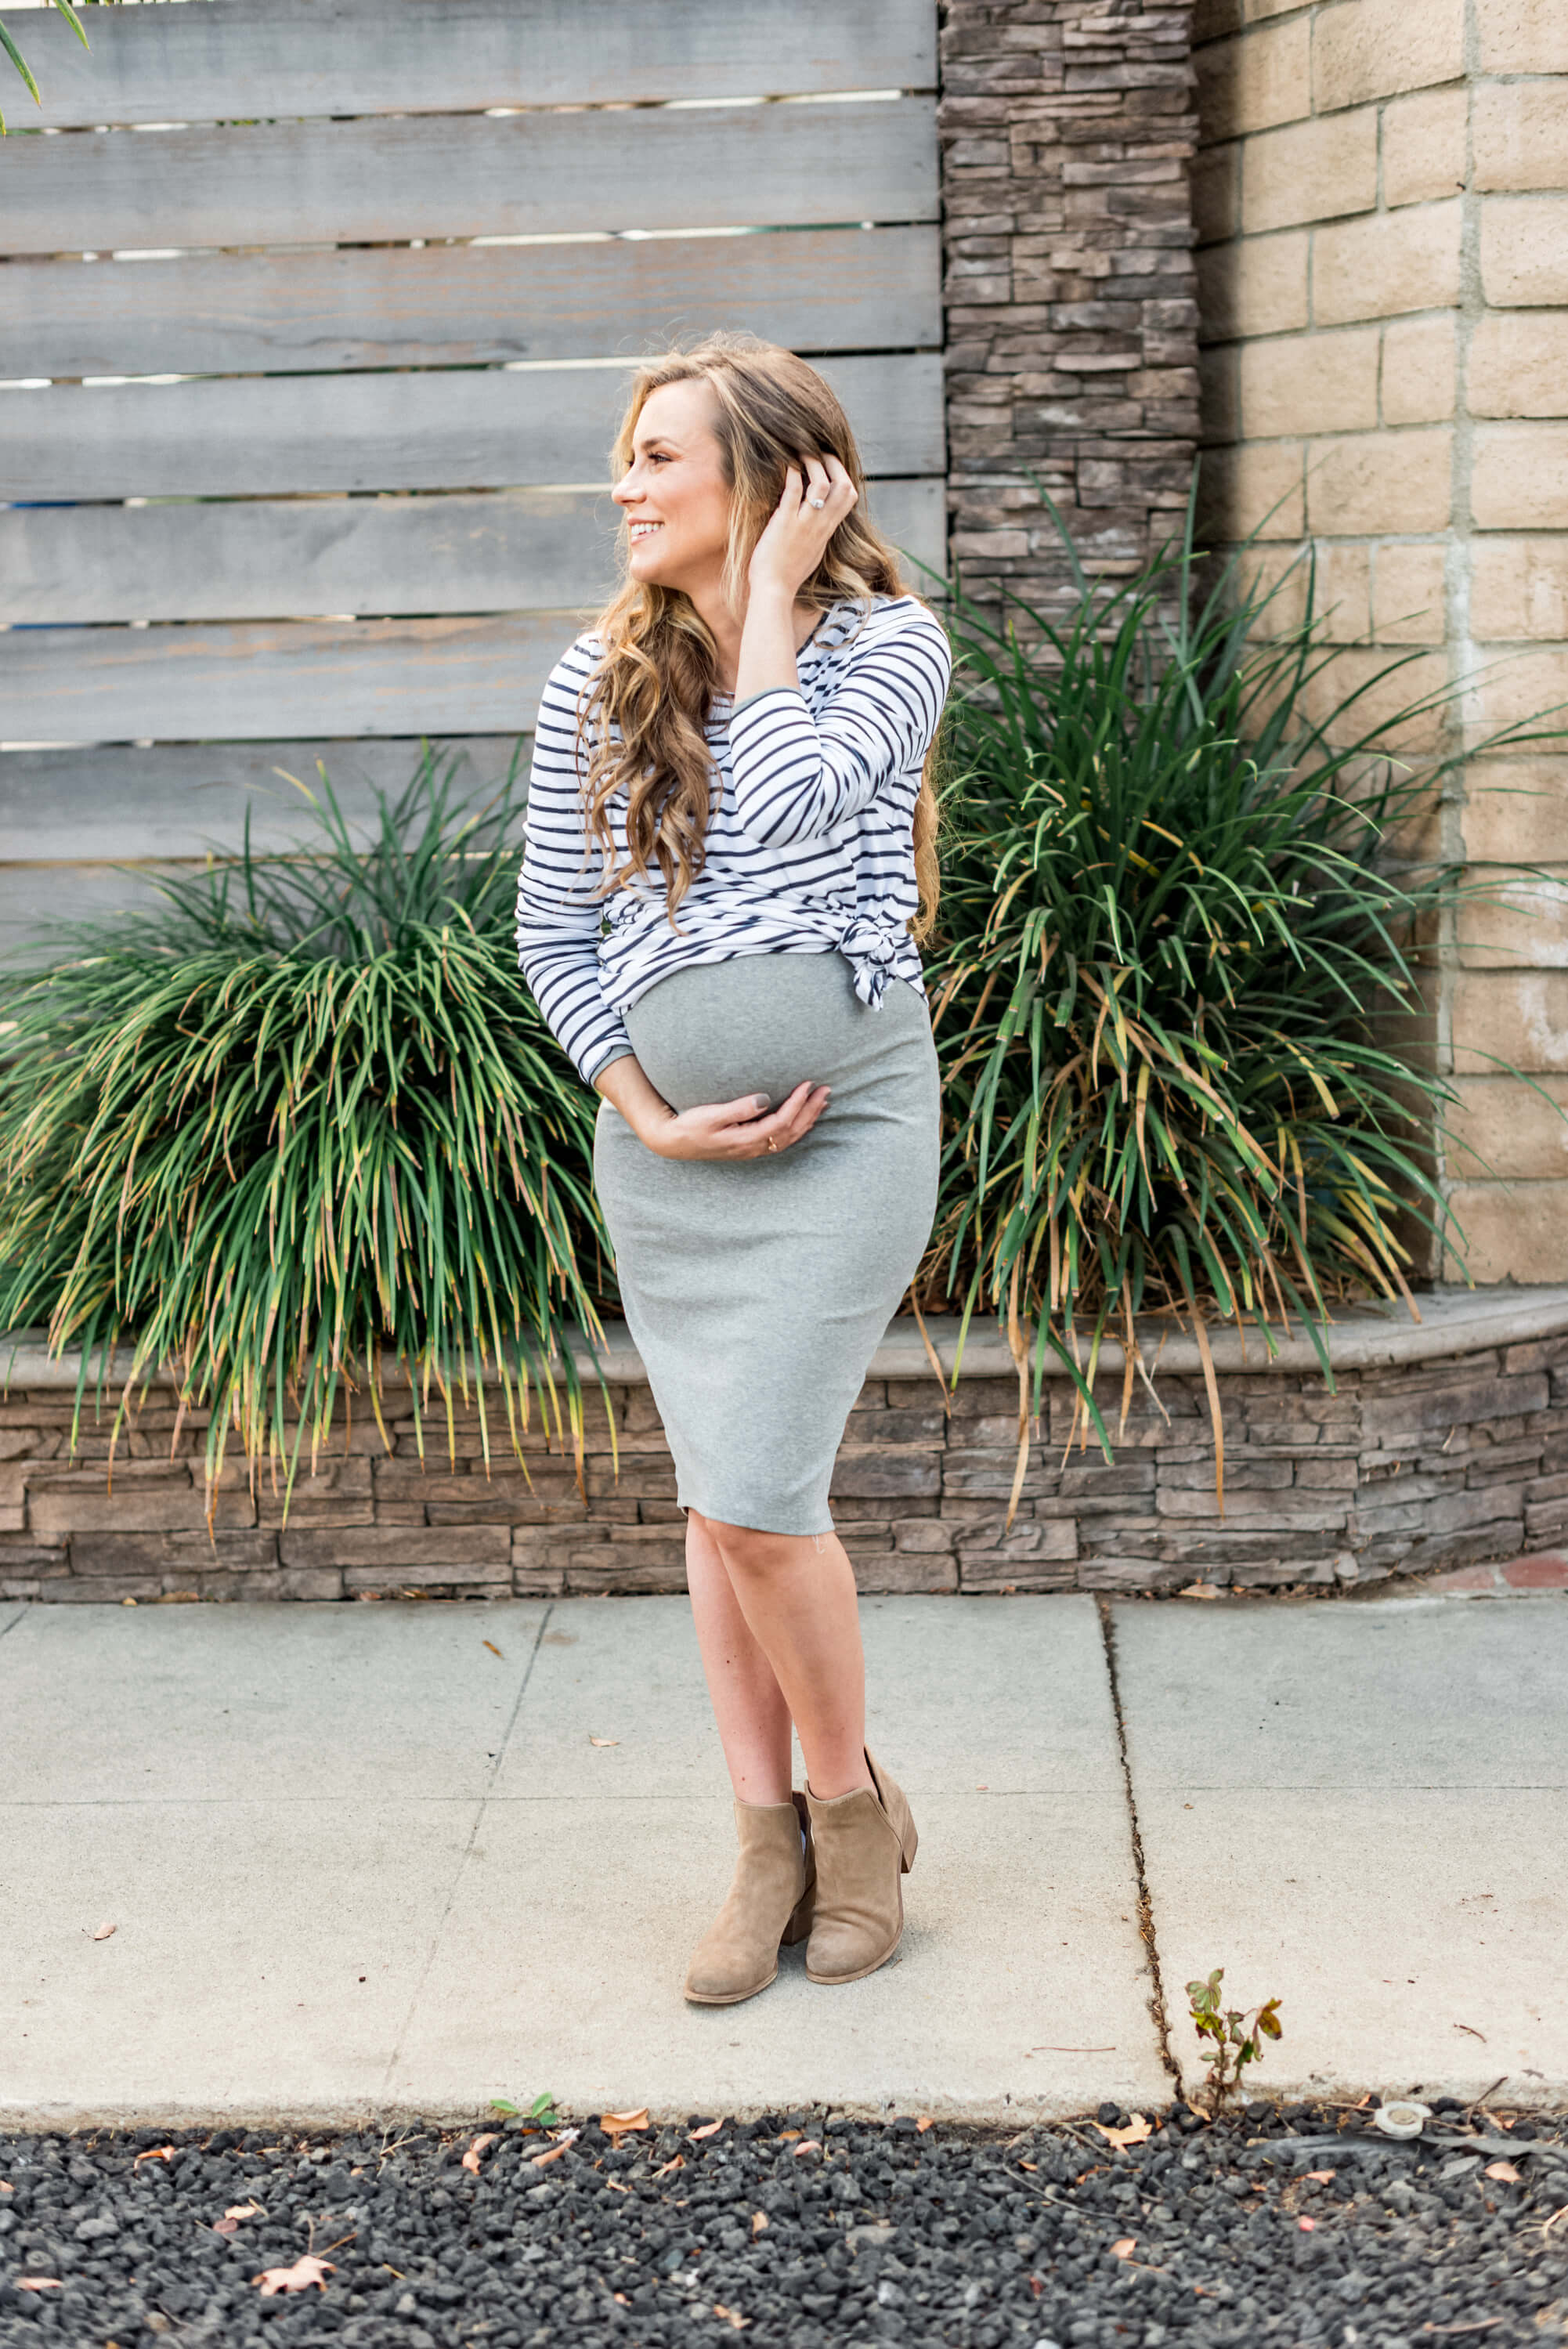 How to Dress While Pregnant Angela Lanter Hello Gorgeous